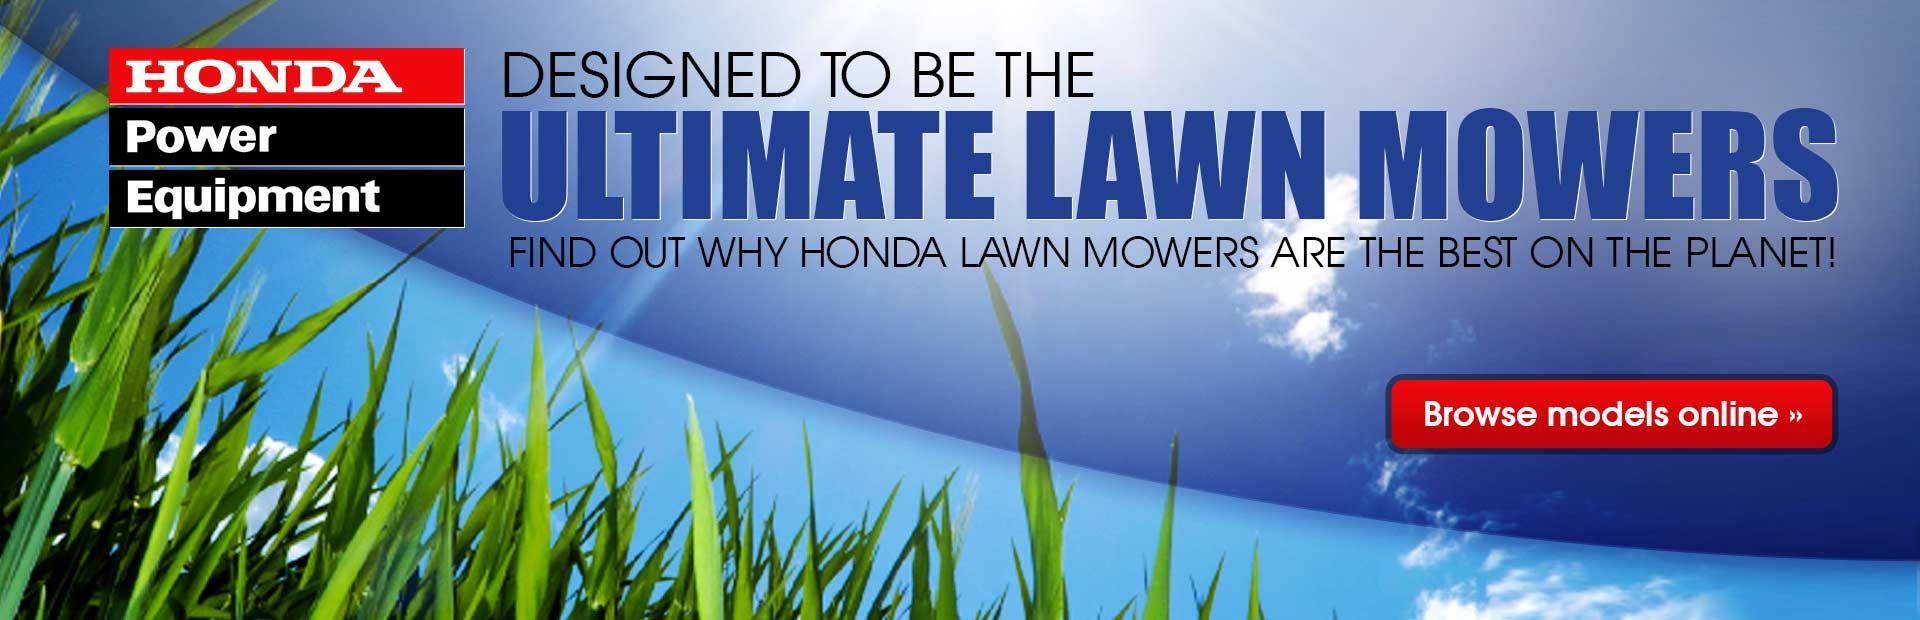 Honda lawn mowers are designed to be the ultimate lawn mowers. Click here to browse models online and to find out why they are the best on the planet!